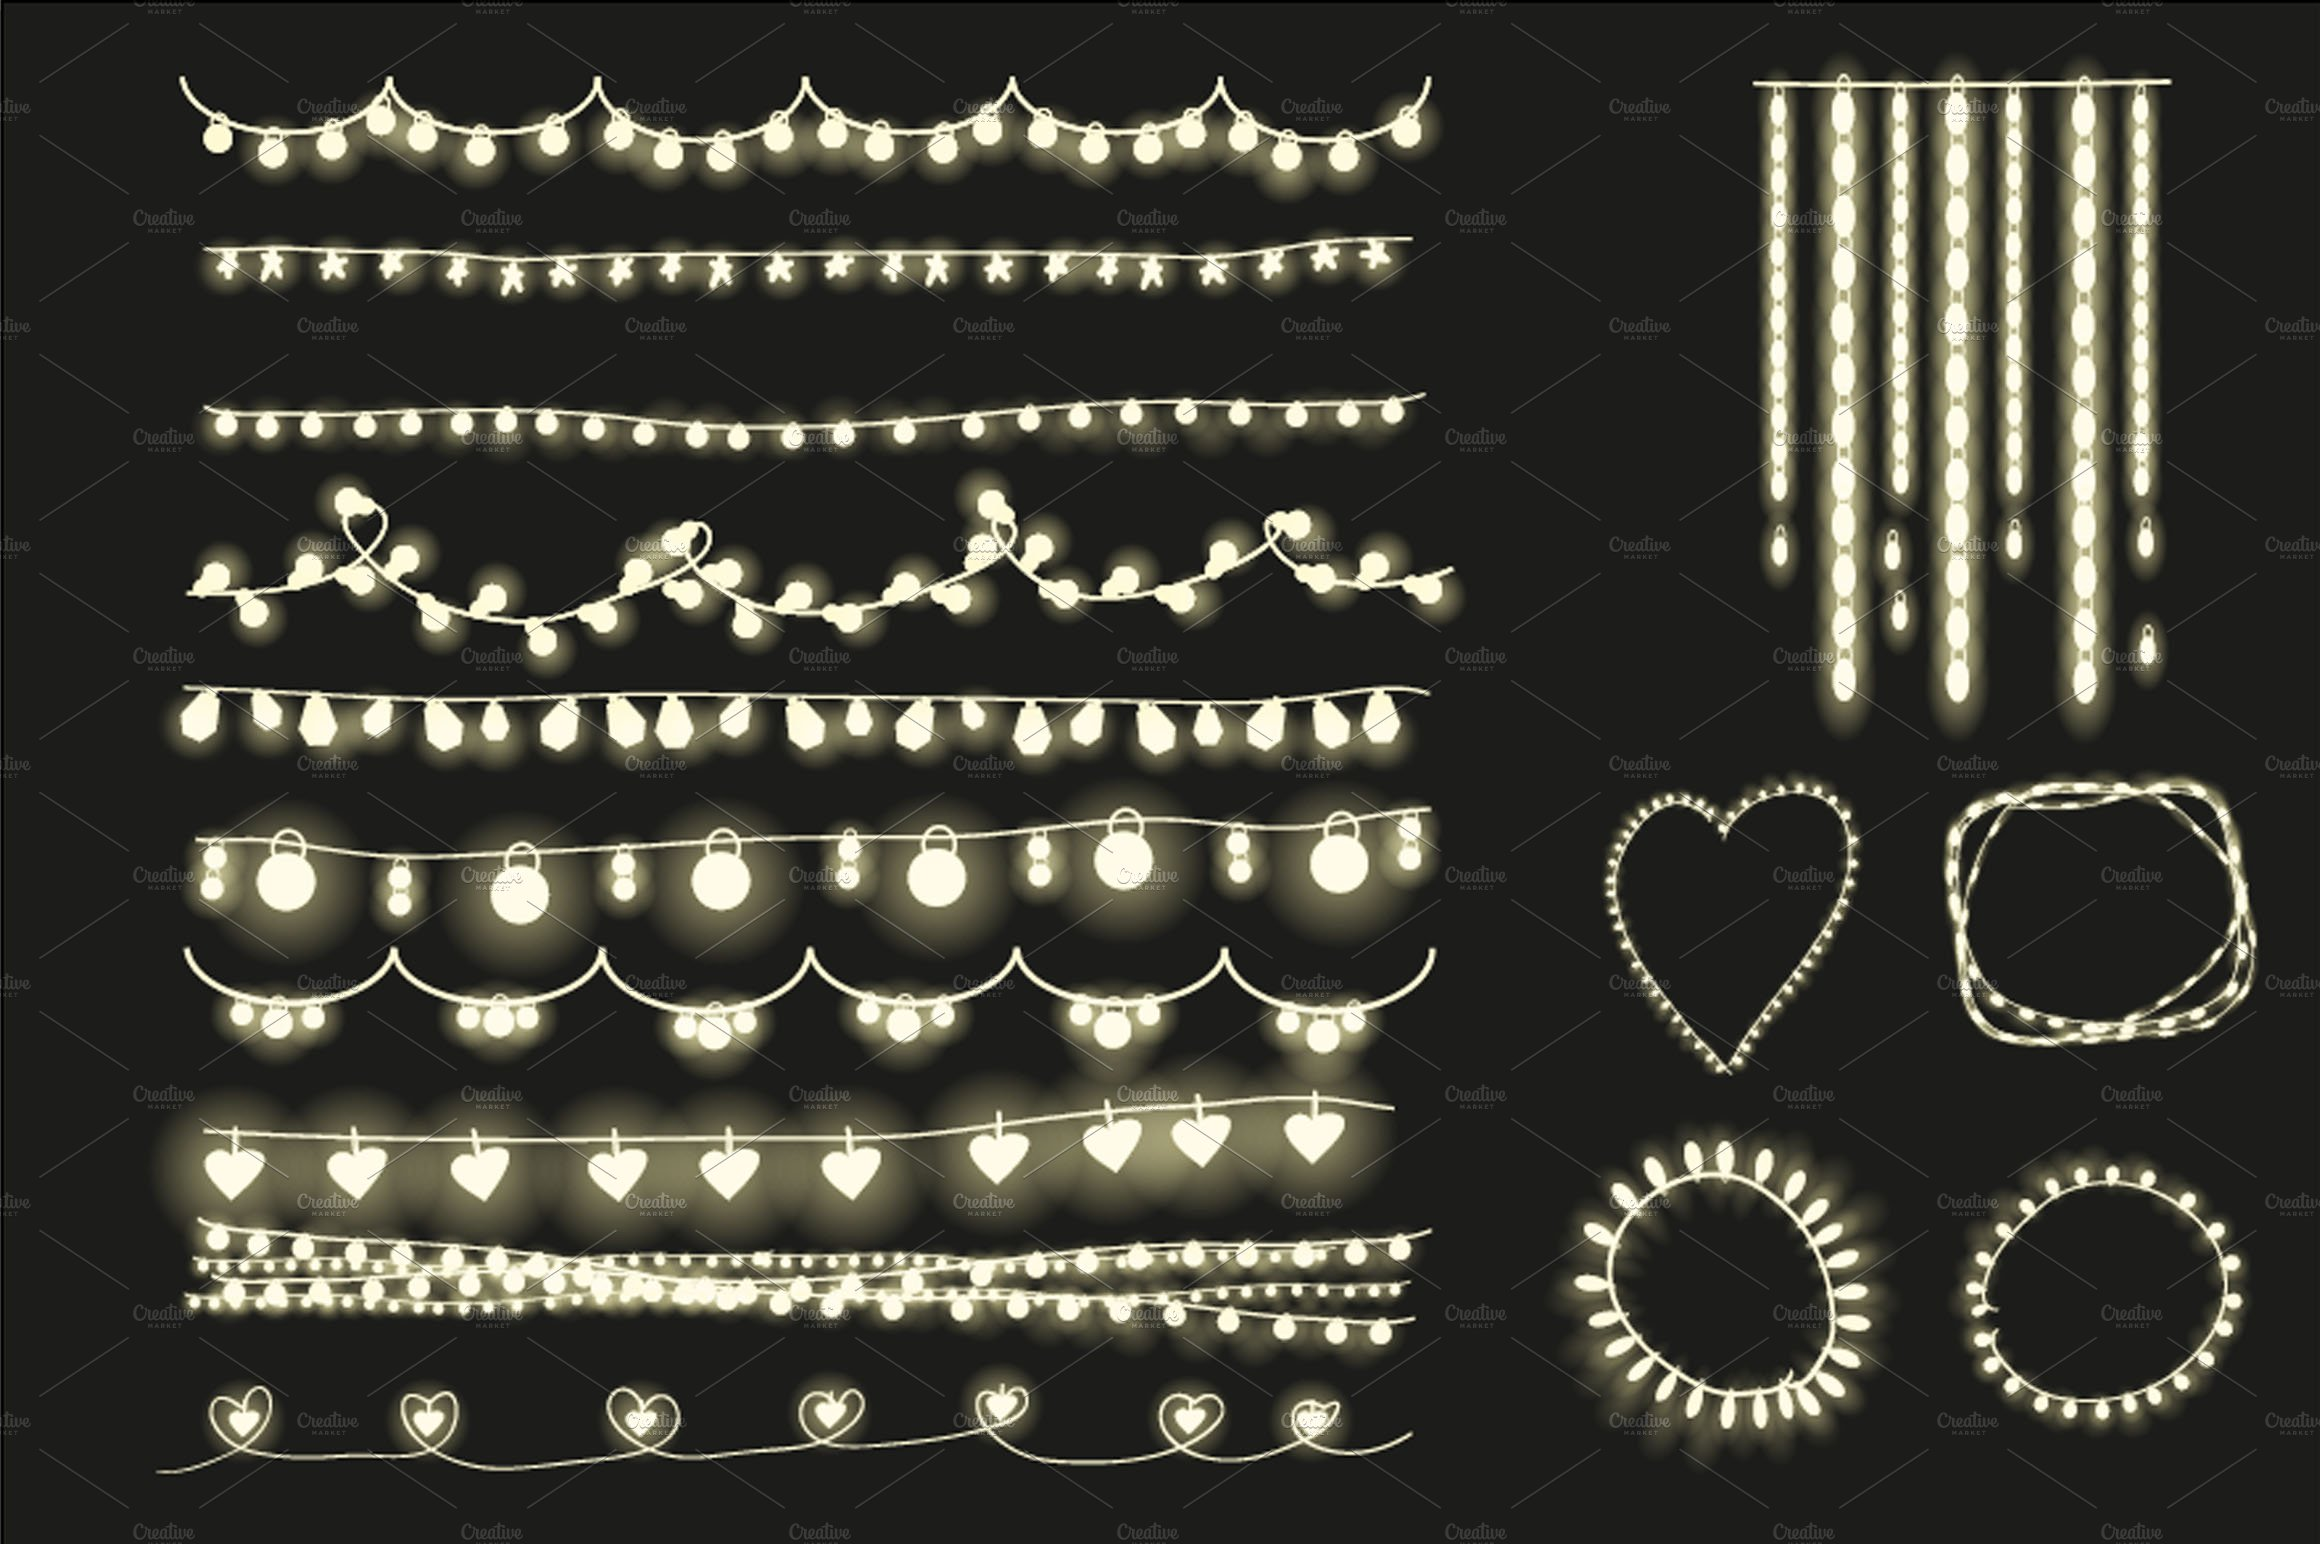 Twinkle lights clipart banner freeuse library String lights clipart Photos, Graphics, Fonts, Themes ... banner freeuse library